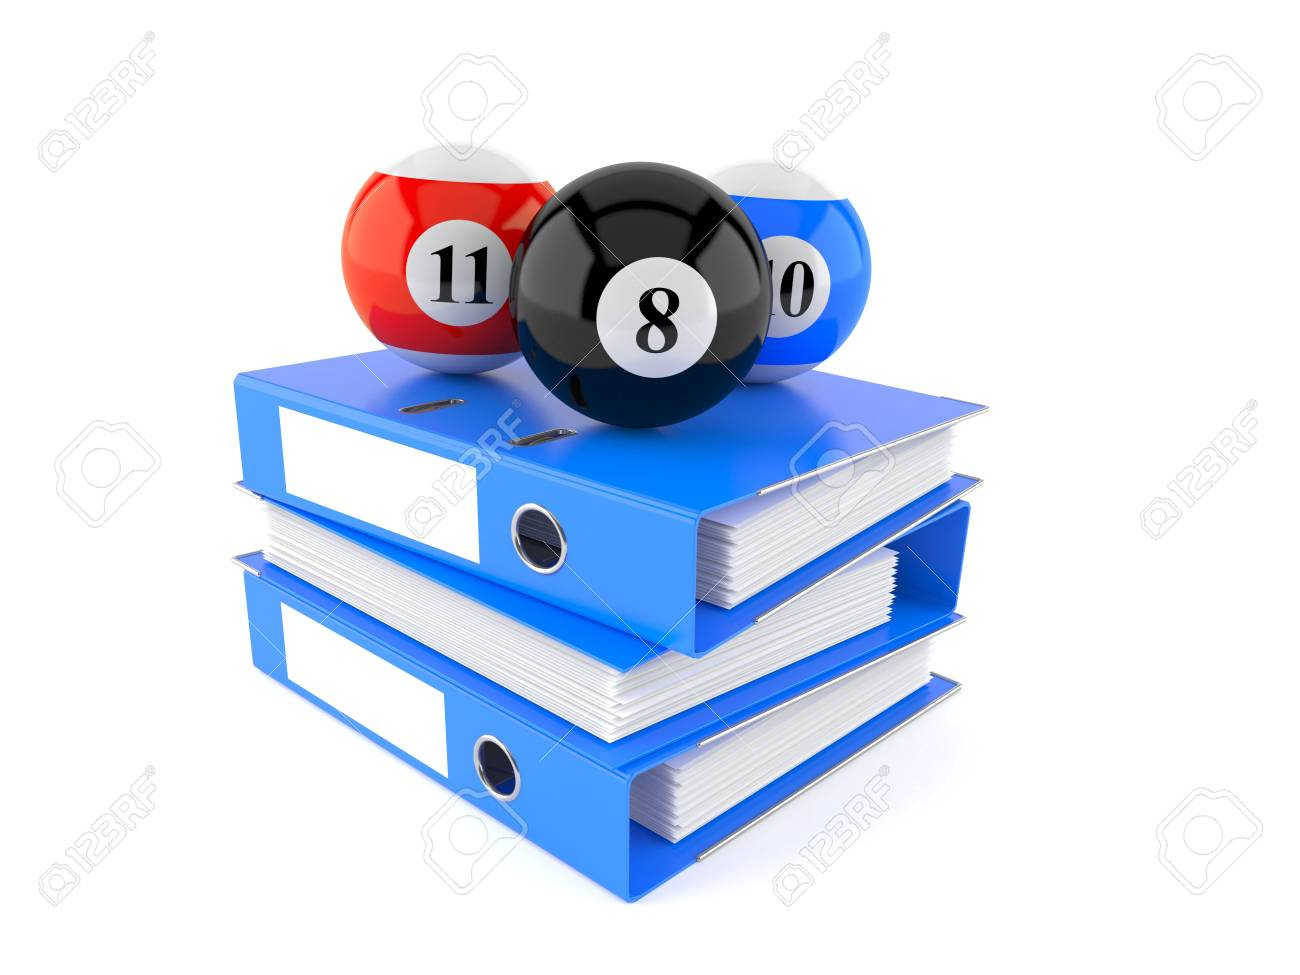 Illustration - Pool balls with ring binders isolated on white background.  3d illustration dba5c4996b5f